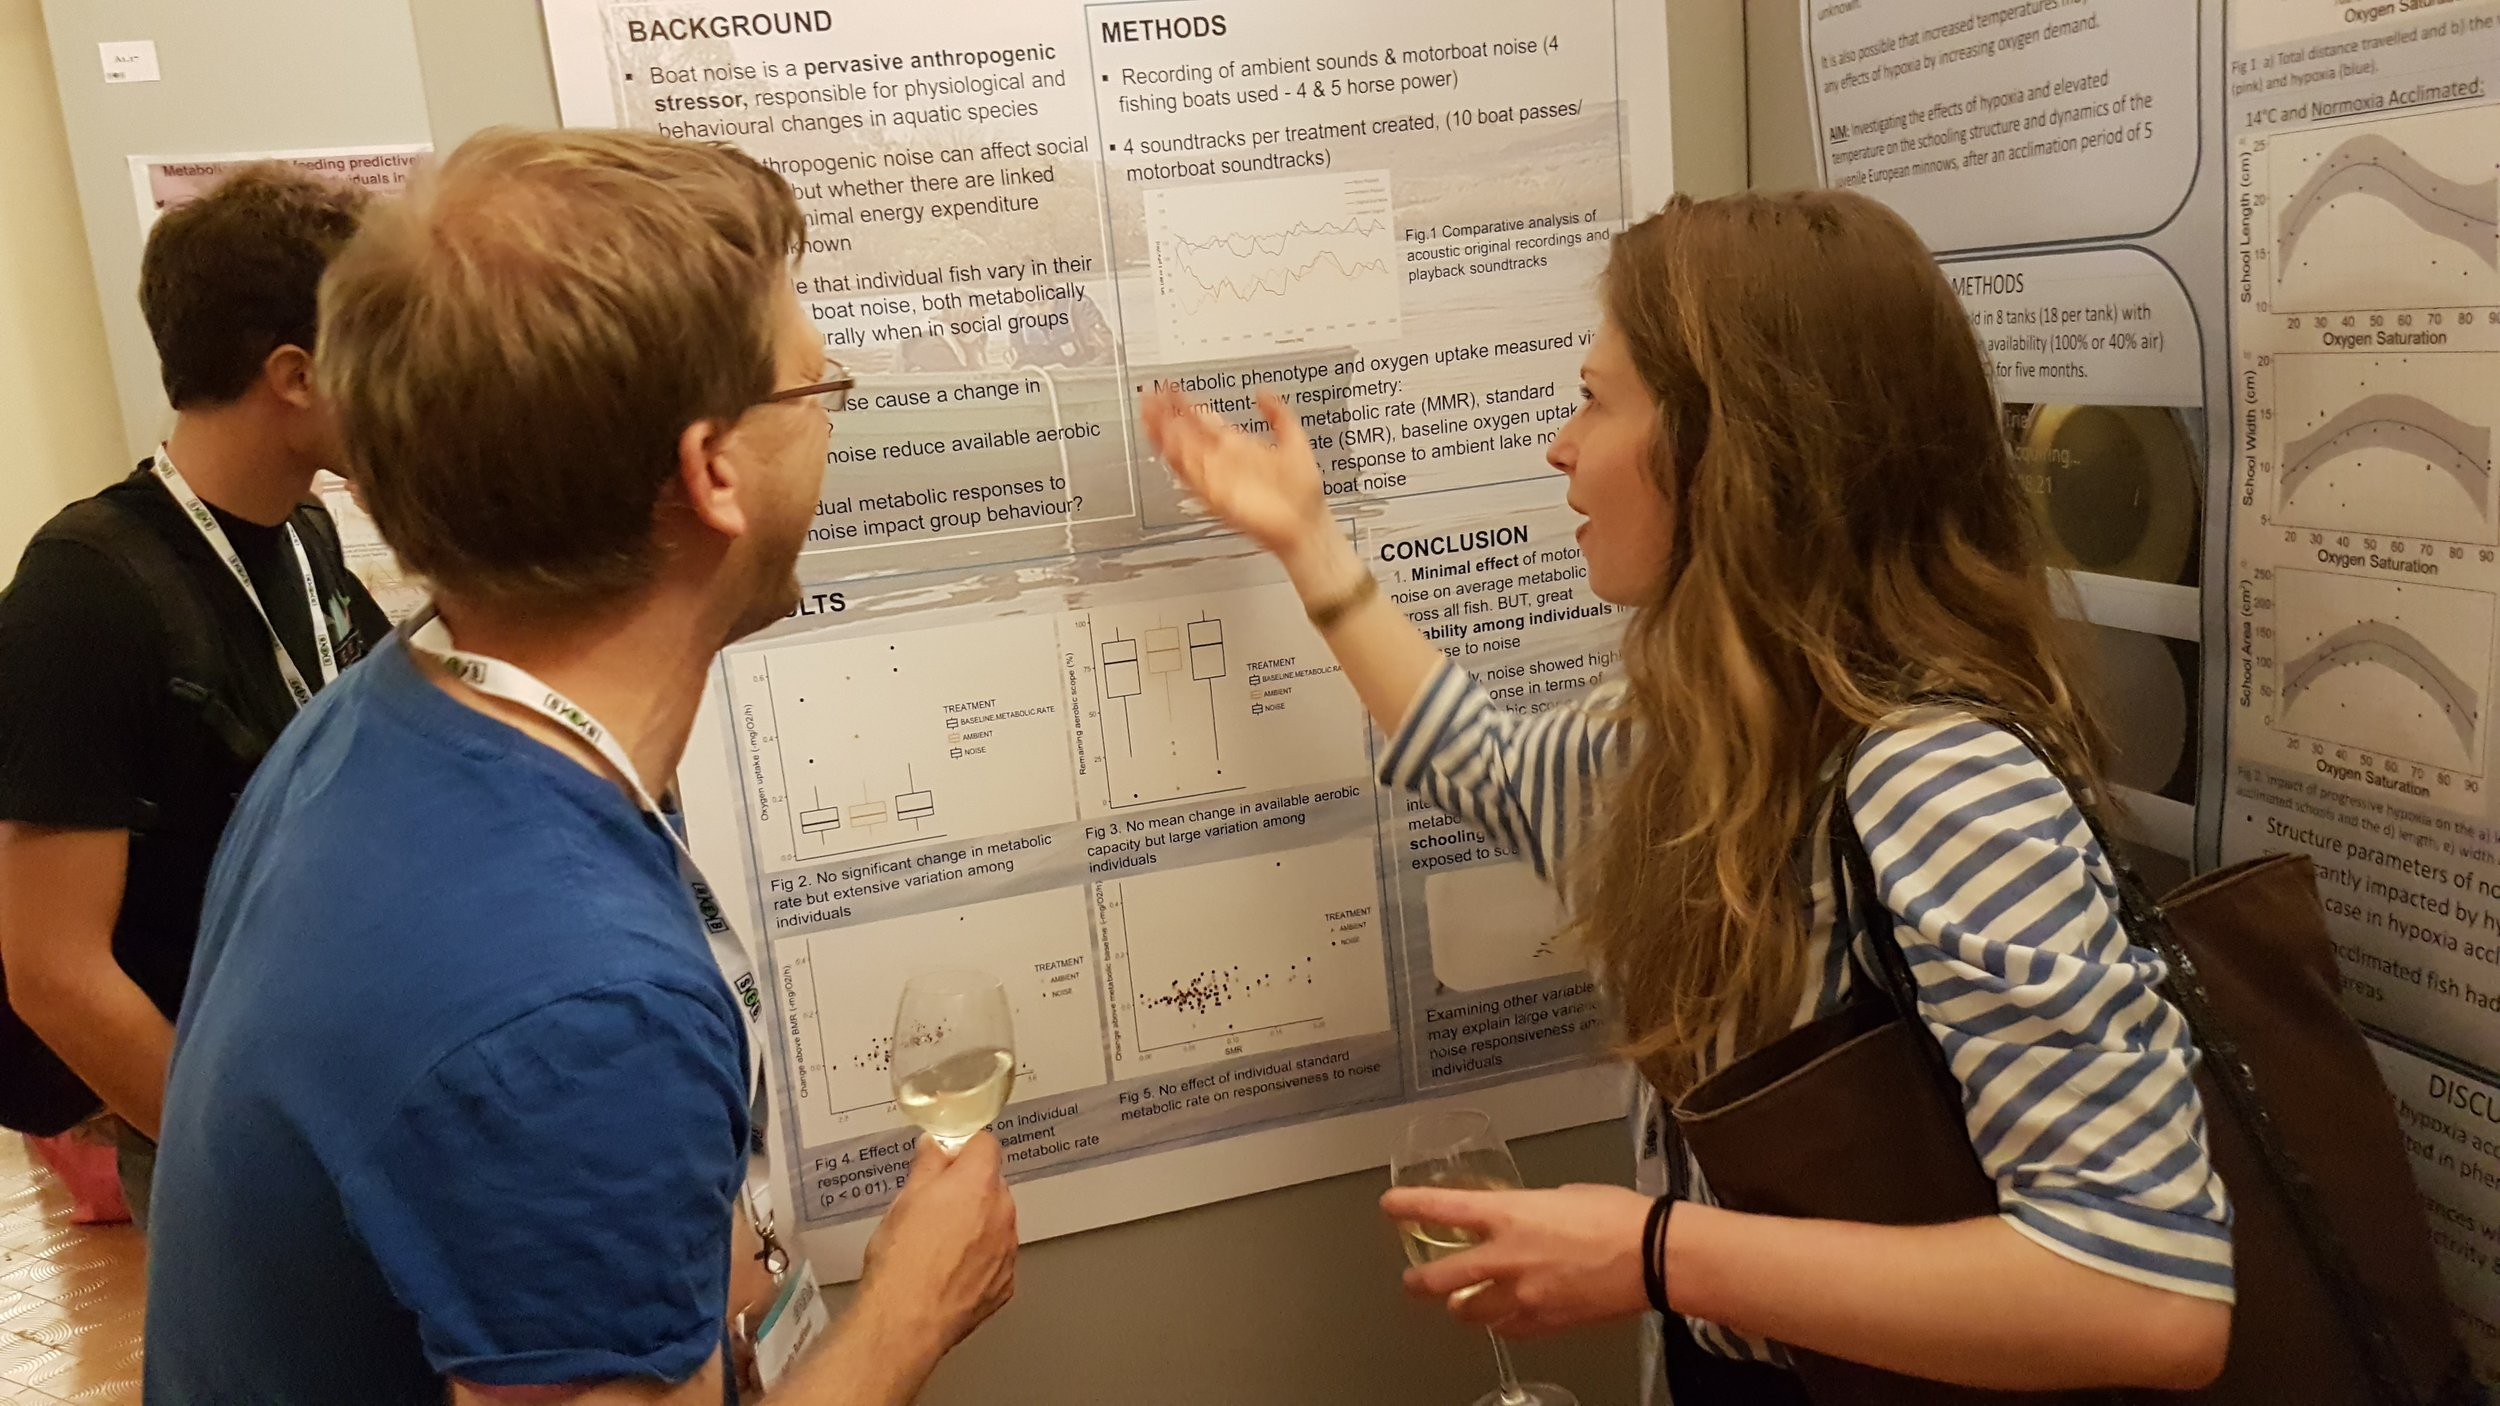 Marie Levet with her poster on how boat noise affects fish metabolic rate.